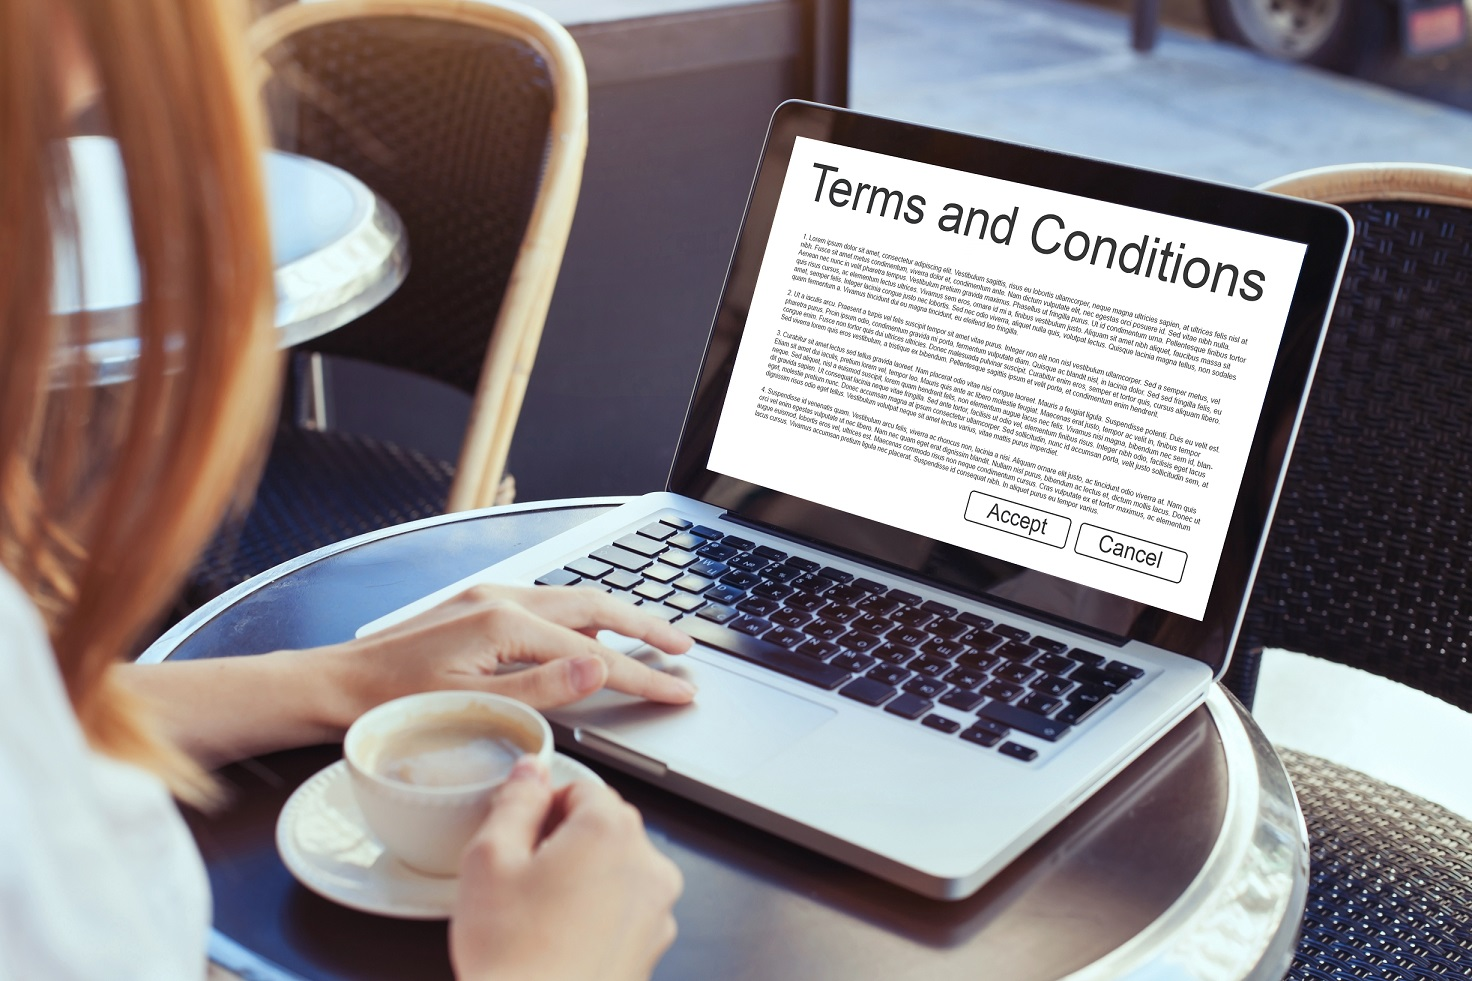 Are online contracts legally enforceable, or are they all wrapped up?